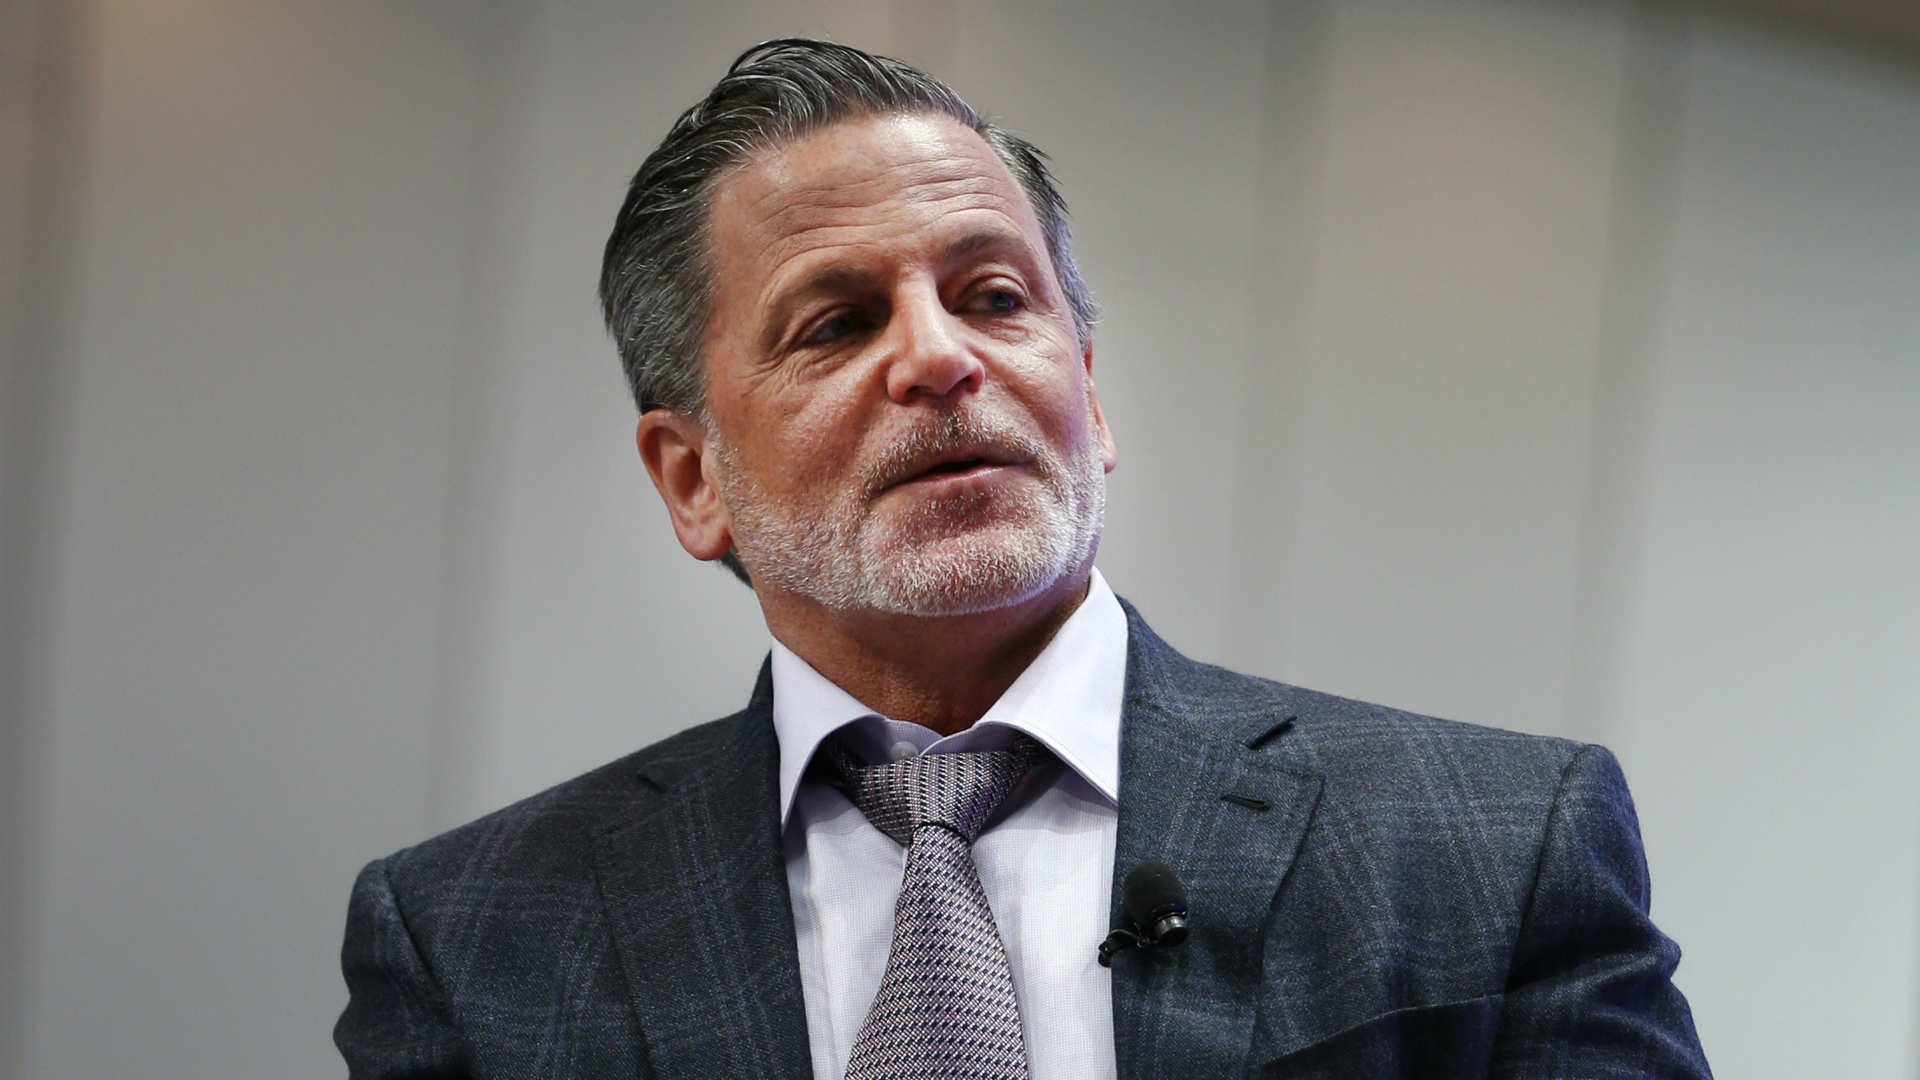 Dan-Gilbert-092917-USNews-Getty-FTR